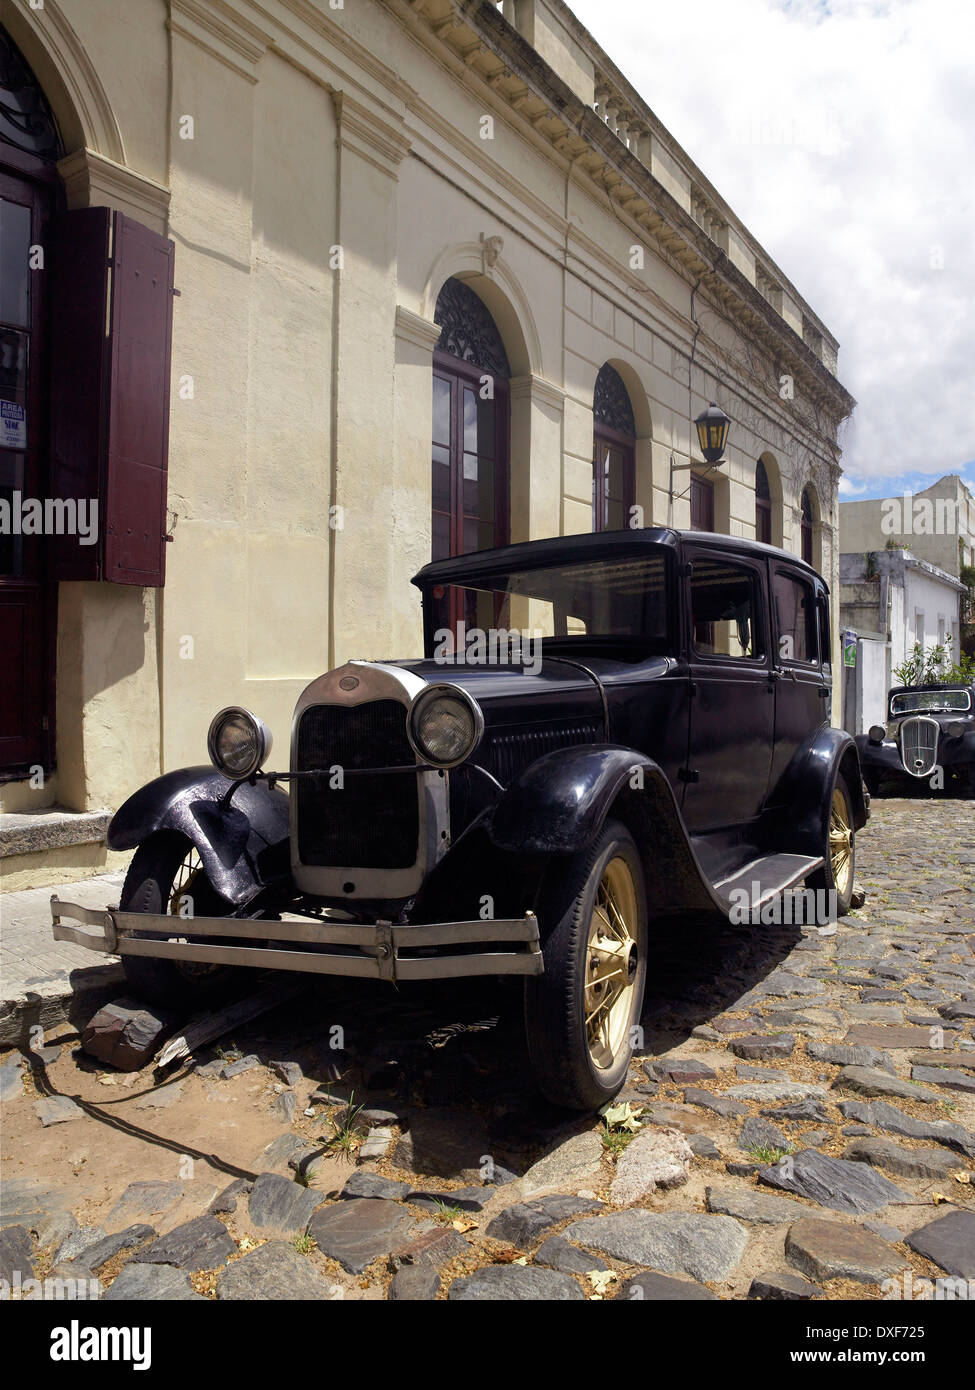 Old cars being used as a street ornament in the UNESCO World ...